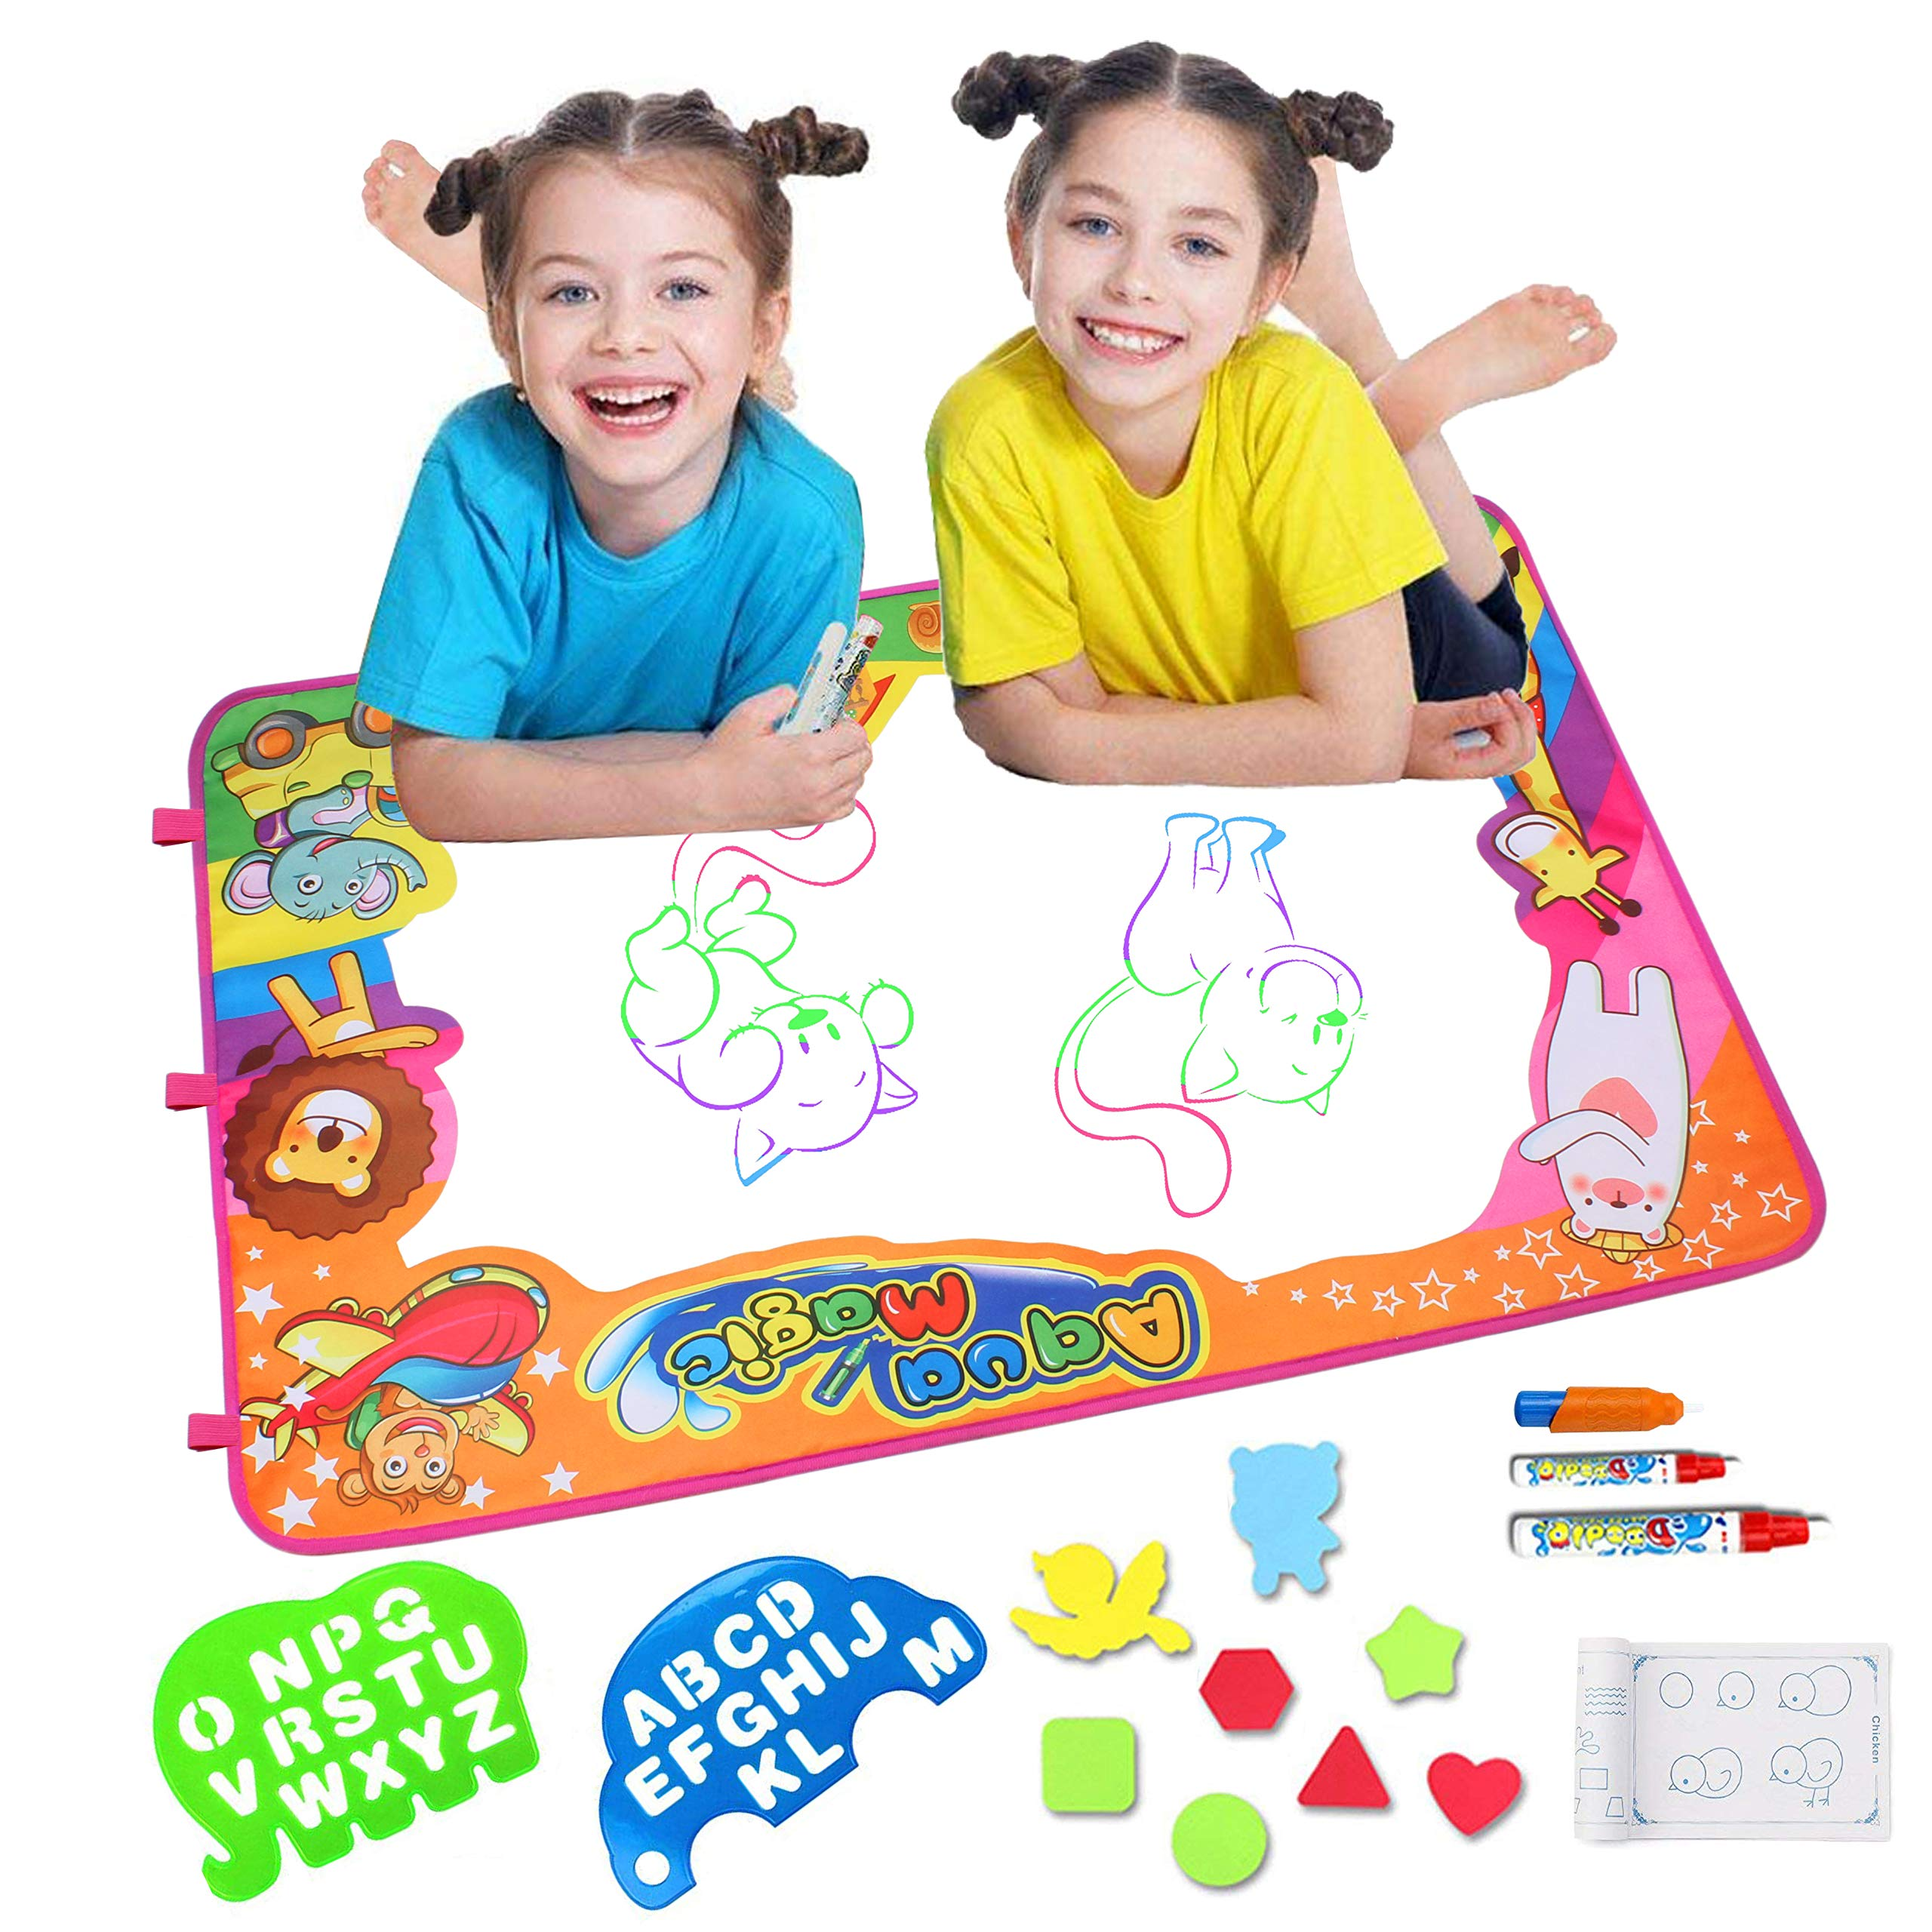 Alpacasso Water Doodle Mat, Children Toys Aqua Magic Water Drawing Mats Toddler Educational Toys with Large Size 34.5'' X 22.5'' Coloring Mat with 3 Pens for Boys Girls Toddlers Age 2 3 4 5+ (Animal)